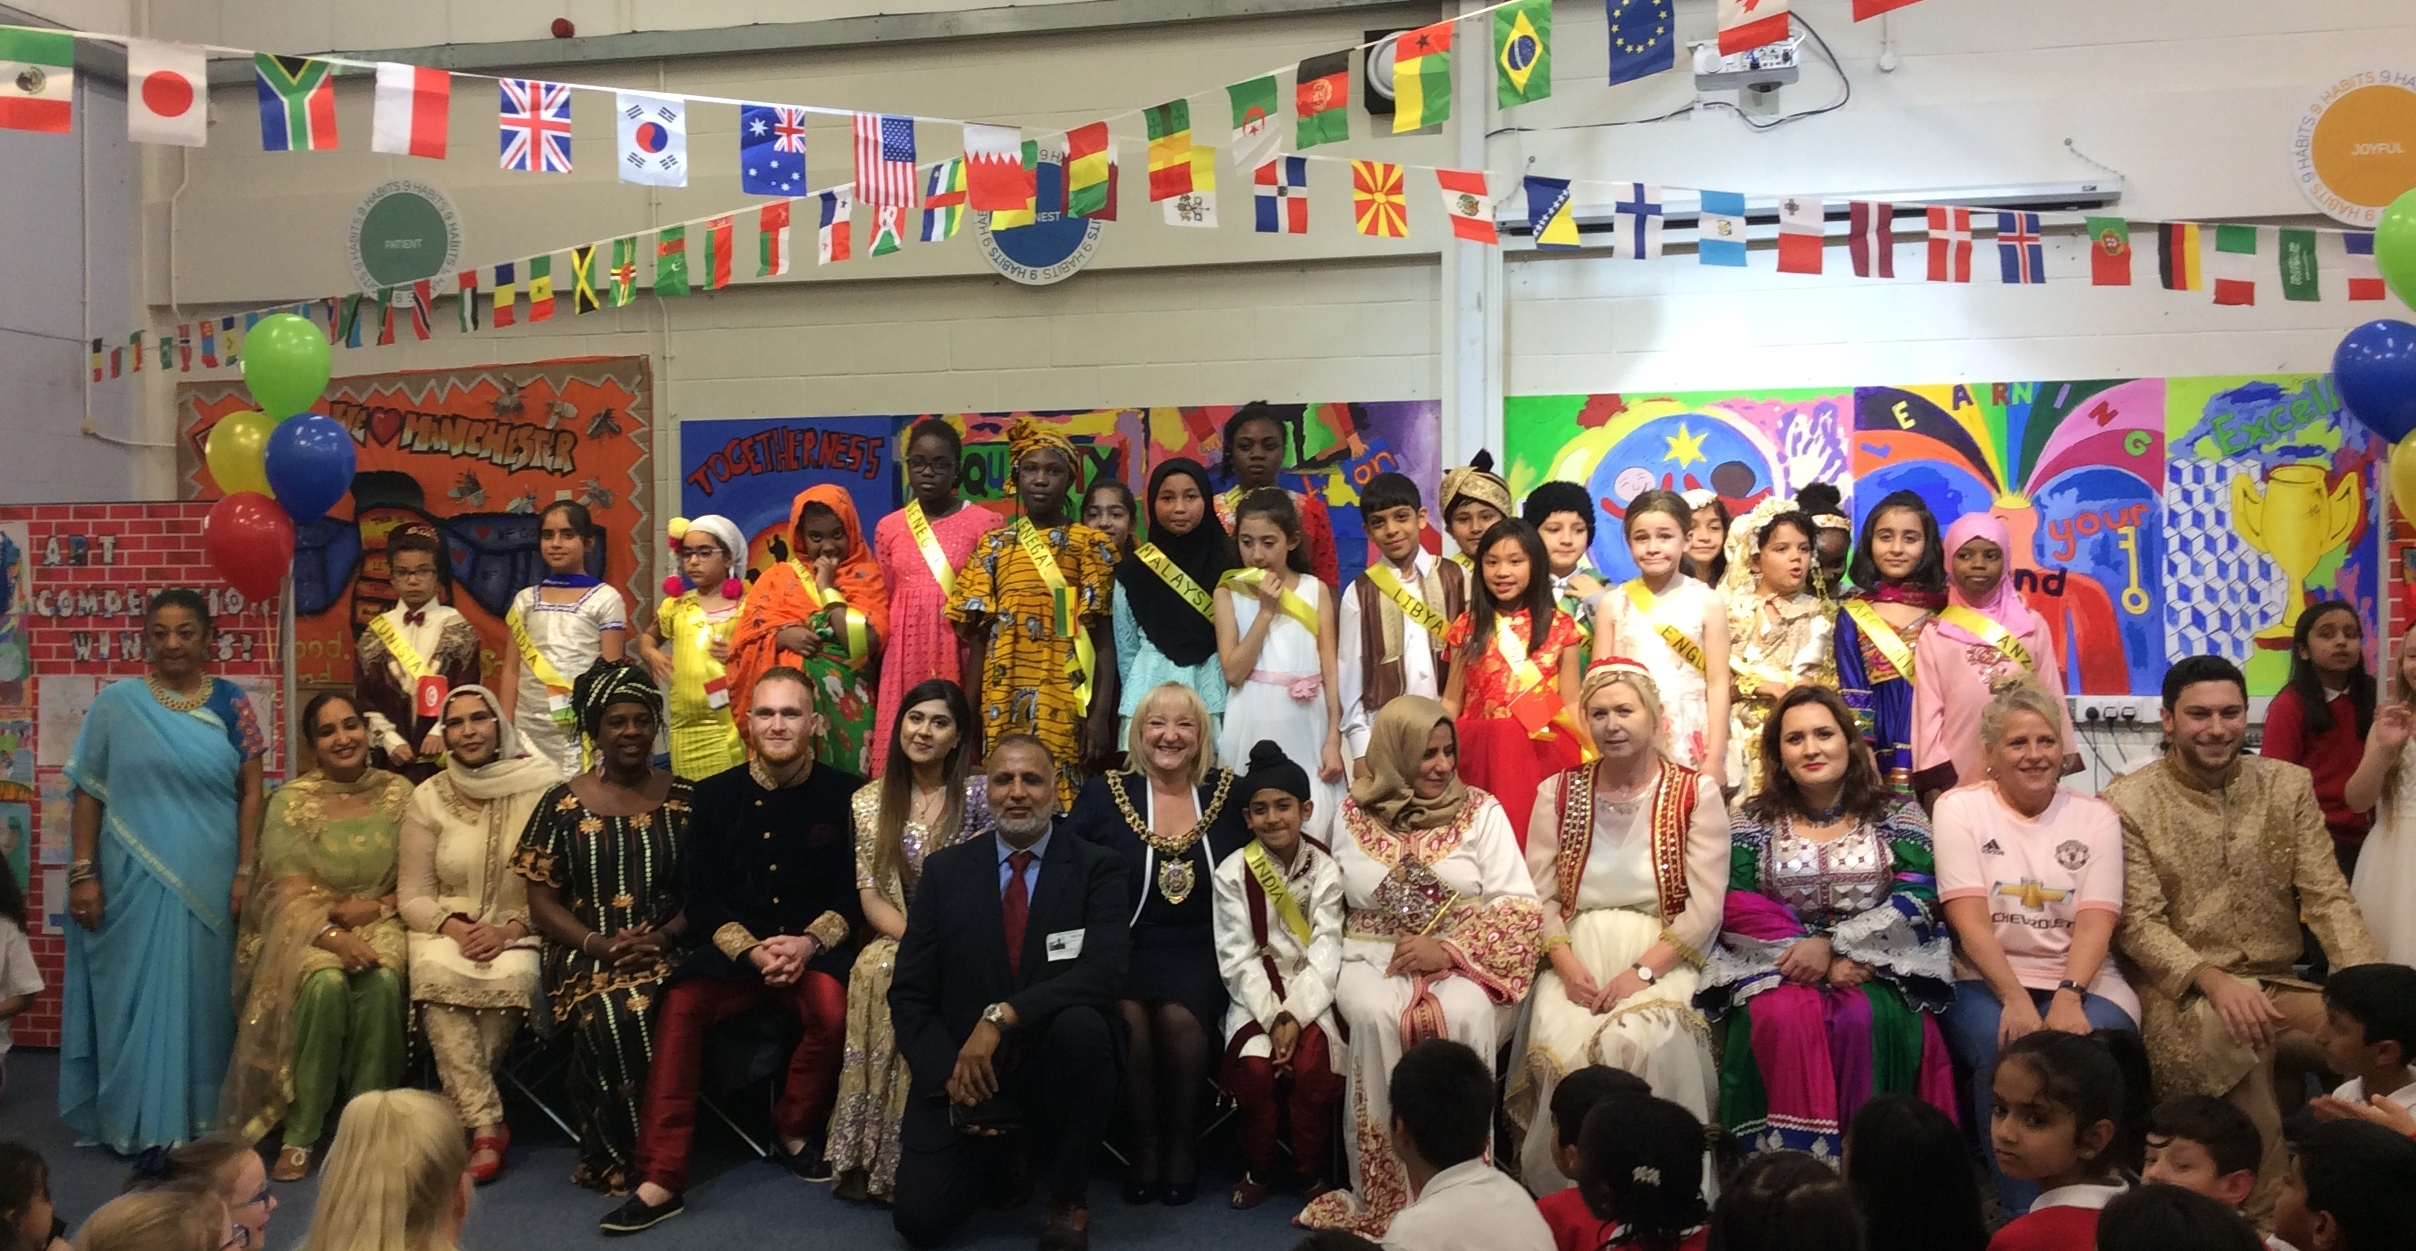 The Cheetham Cultural Festival Opening Ceremony